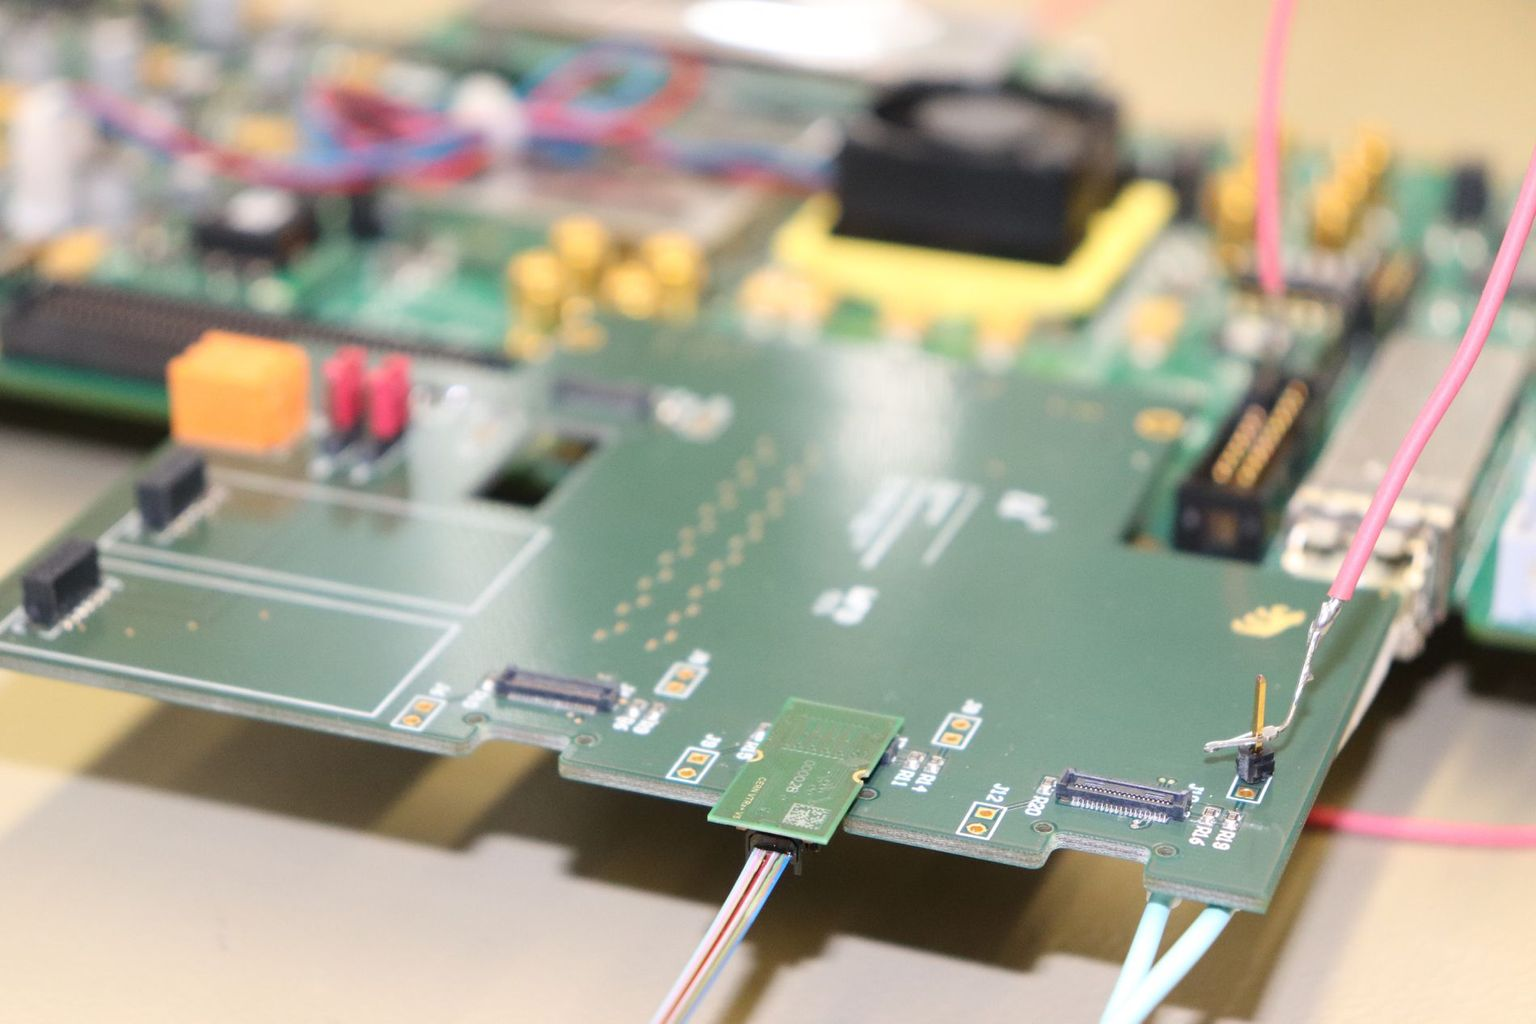 The printed circuit board used by Armin Fehr to study the conversion of electrical signals into light pulses. The fibre optic cables are connected in the foreground of the picture.